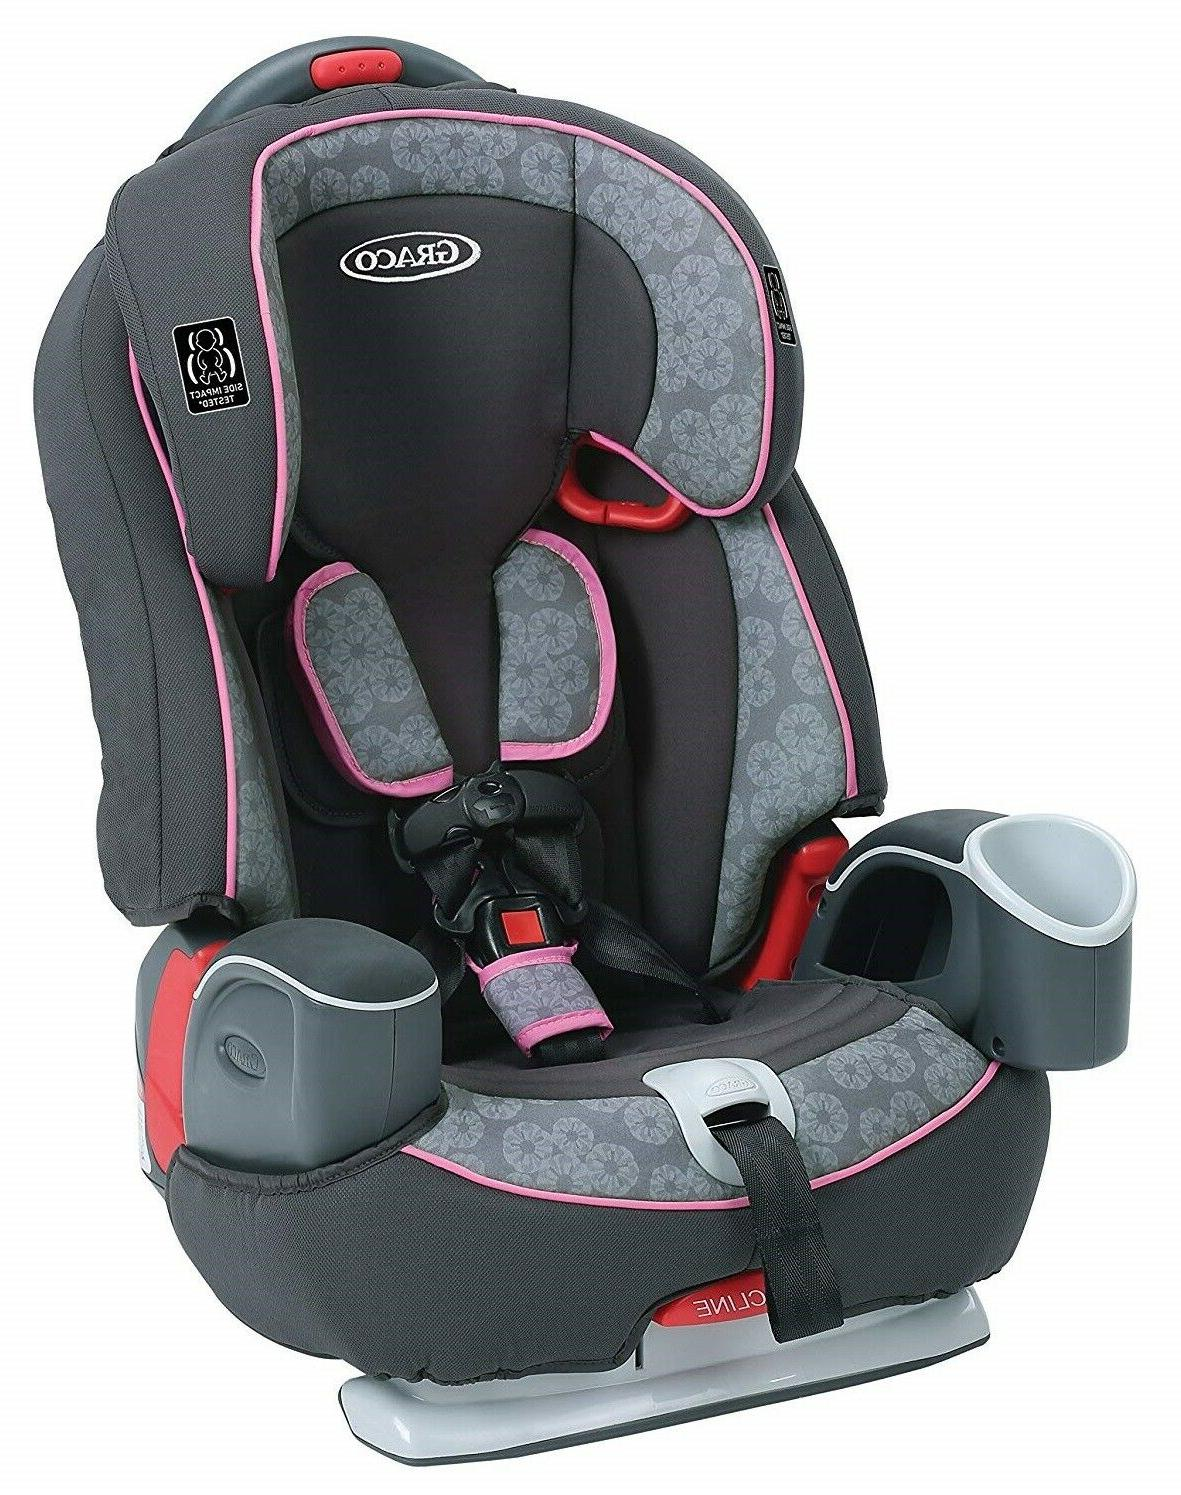 Graco Nautilus 65 3-in-1 Harness Booster Car Seat, Sylvia